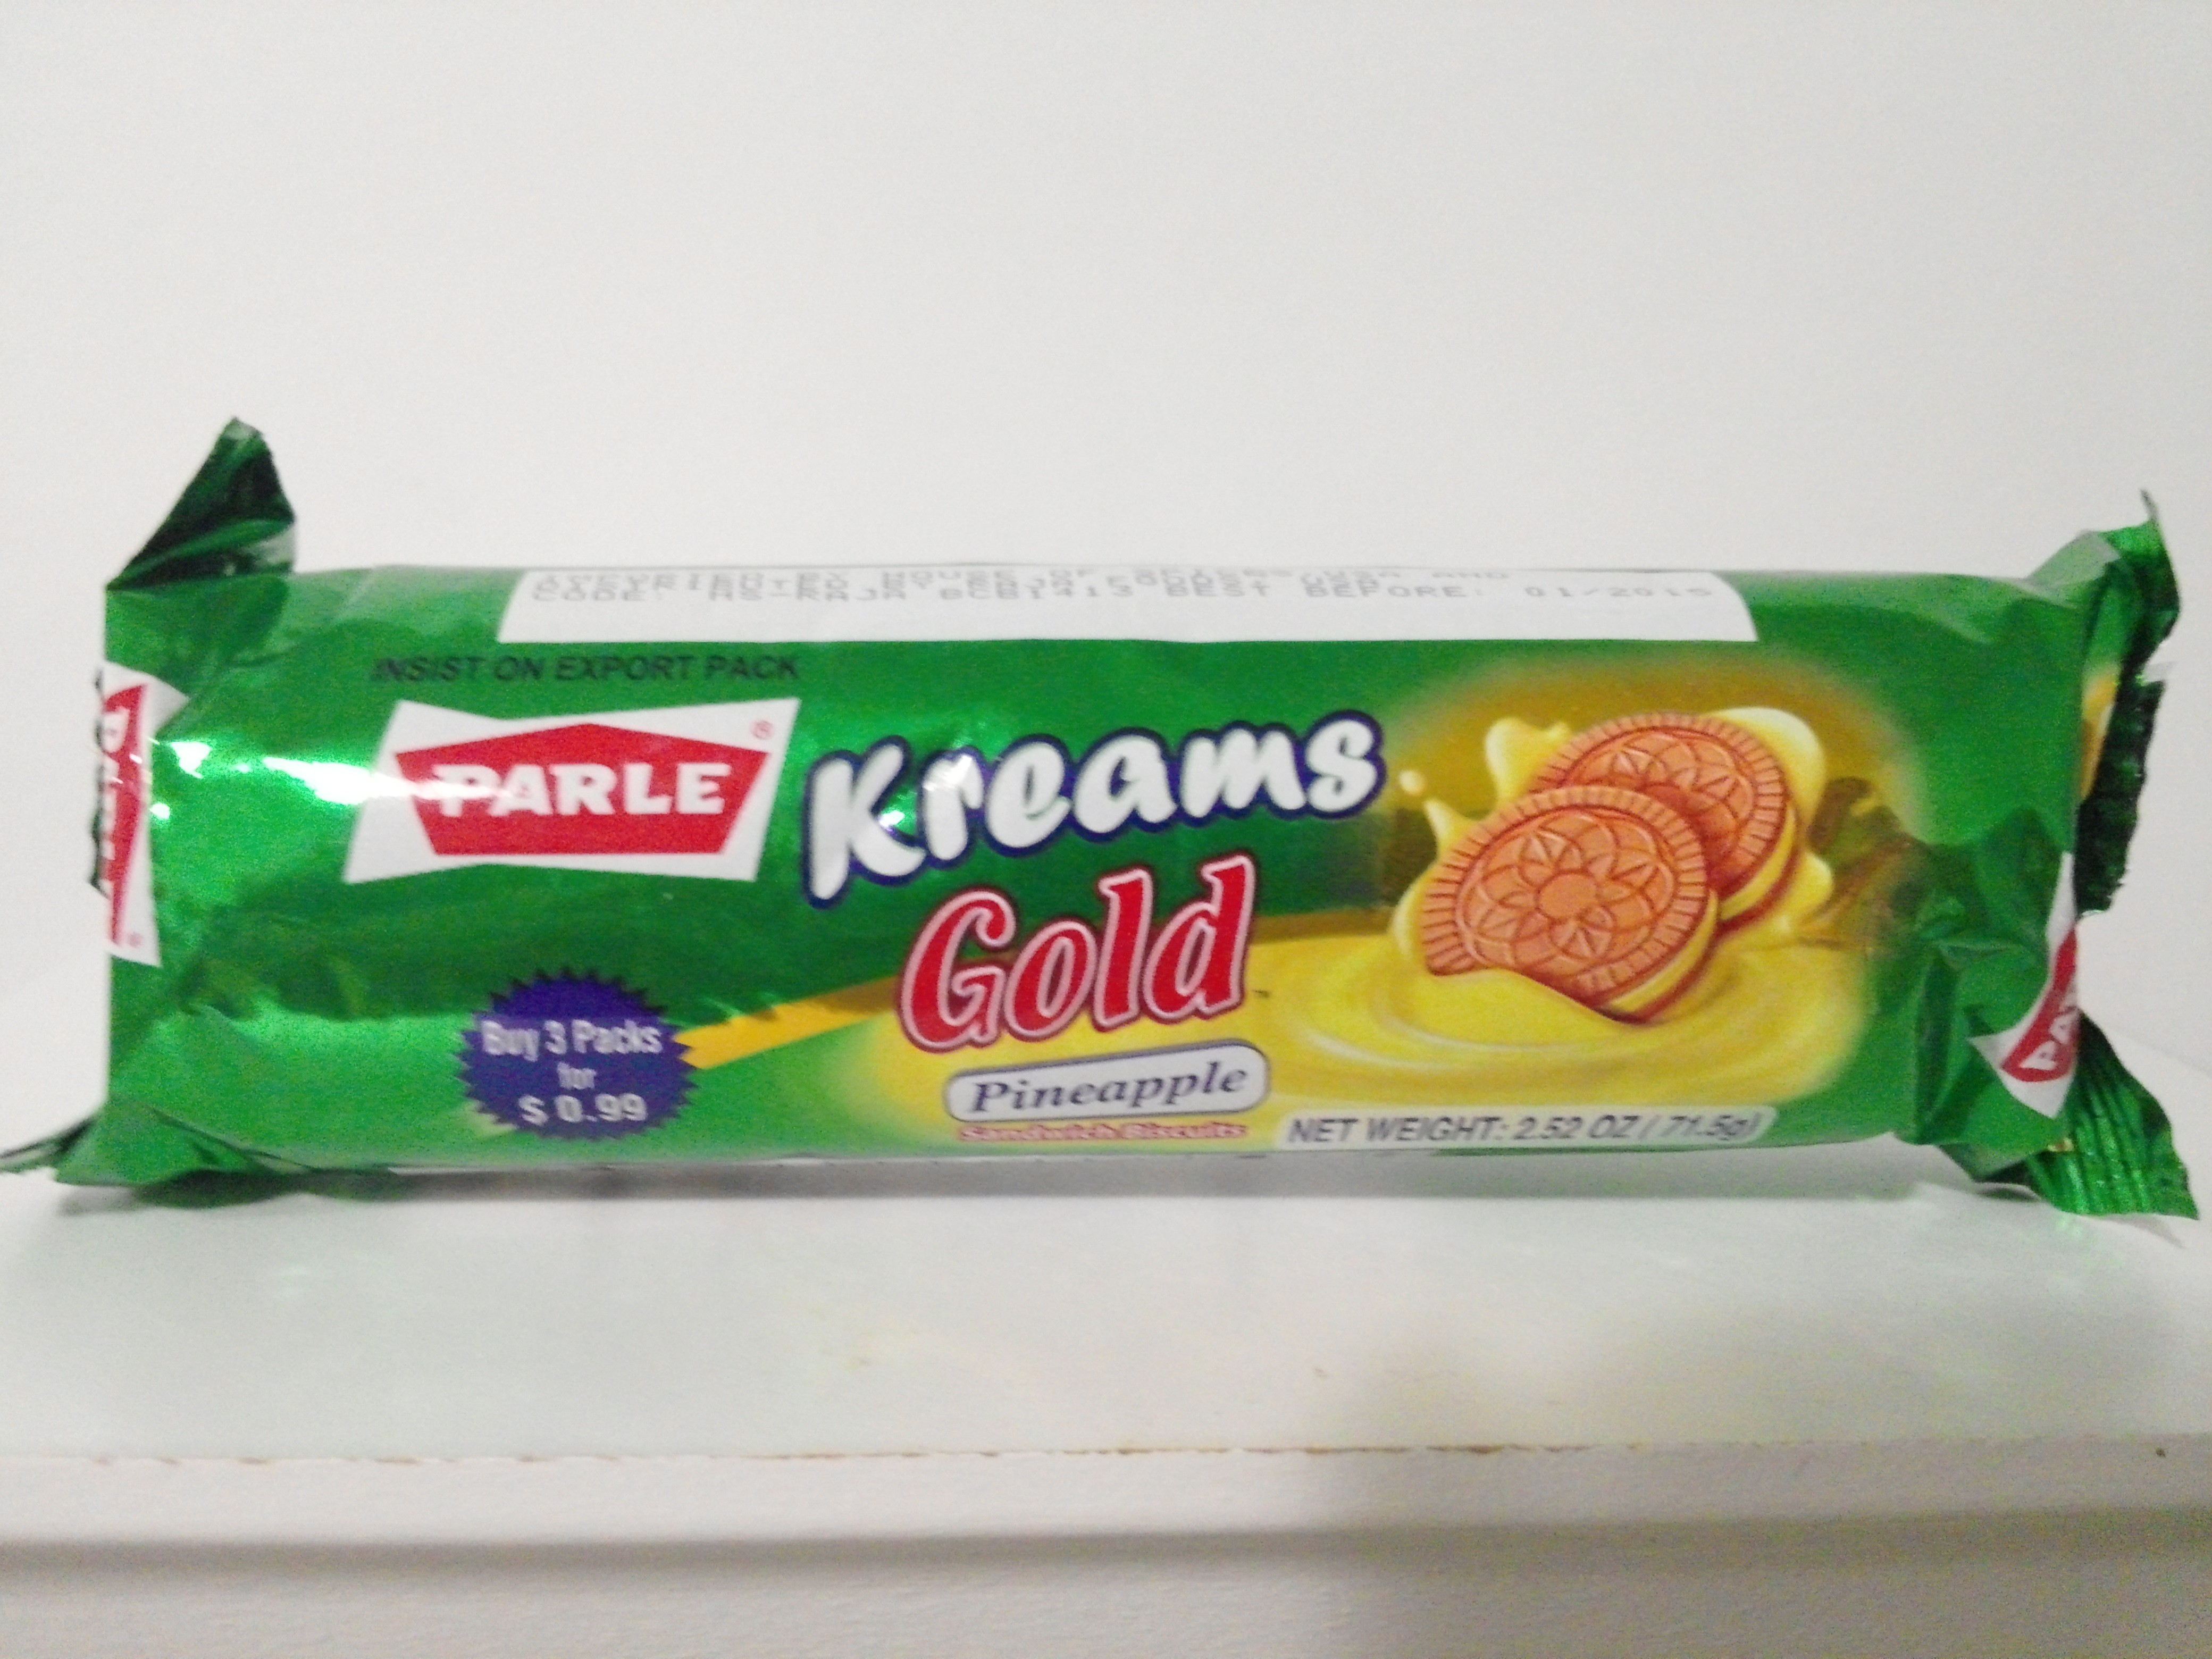 Parle Kreams Gold Pineapple Sandwich Biscuits 2.52 oz